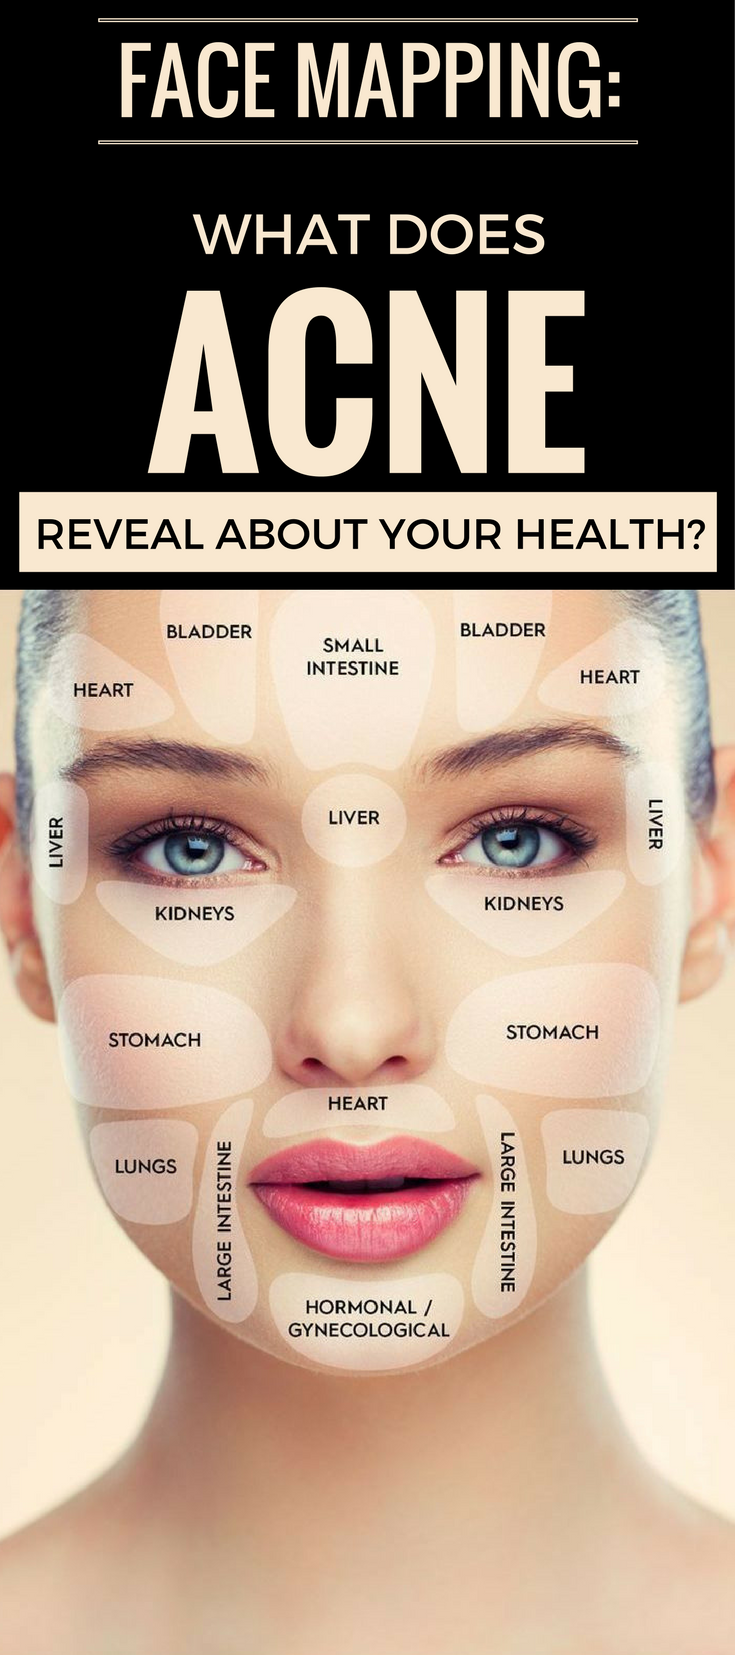 medium resolution of face mapping what does acne reveal about your health important acne area meaning acne diagram face